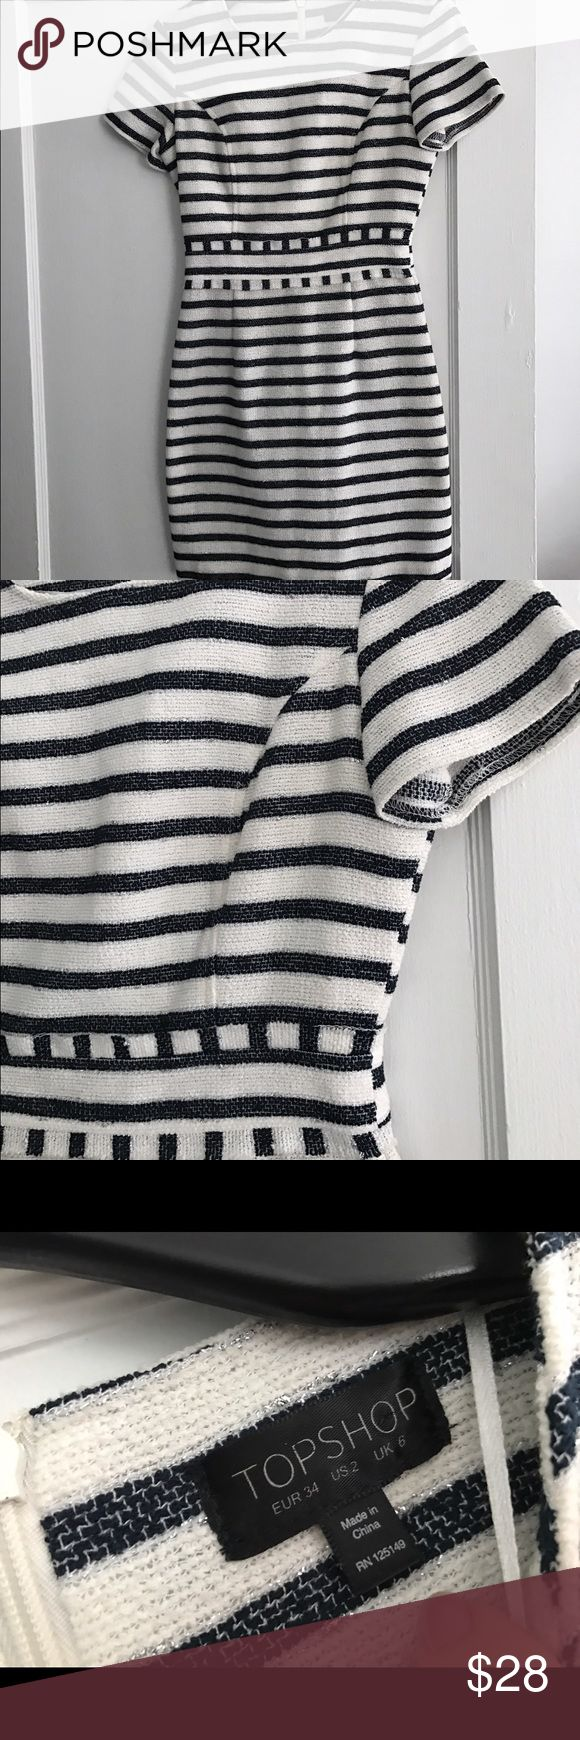 One day sale Topshop dress size 2 GUC navy & white Pet and smoke free home. Bundle discount 20% leaving today June 28th snag by noon for this great price Topshop Dresses